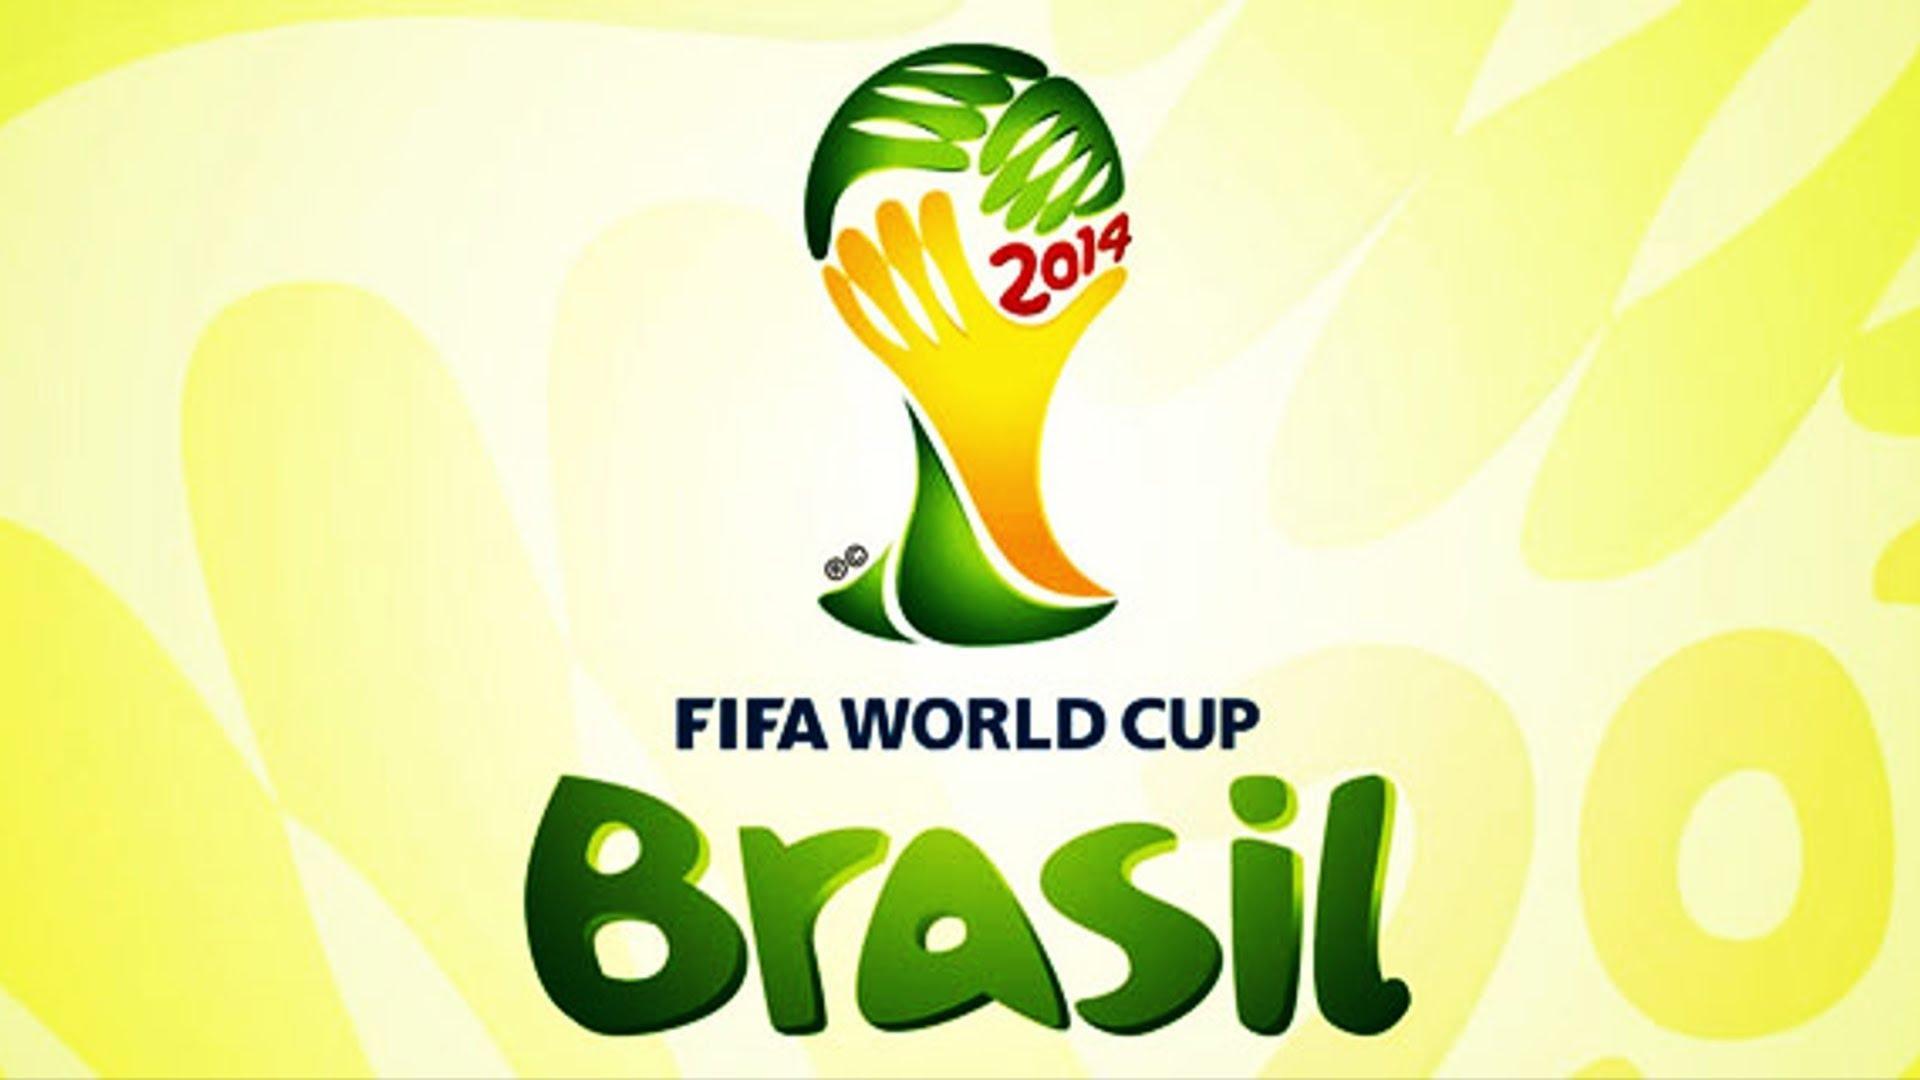 What's the top 3 winners of 2014 FIFA World Cup Brazil?